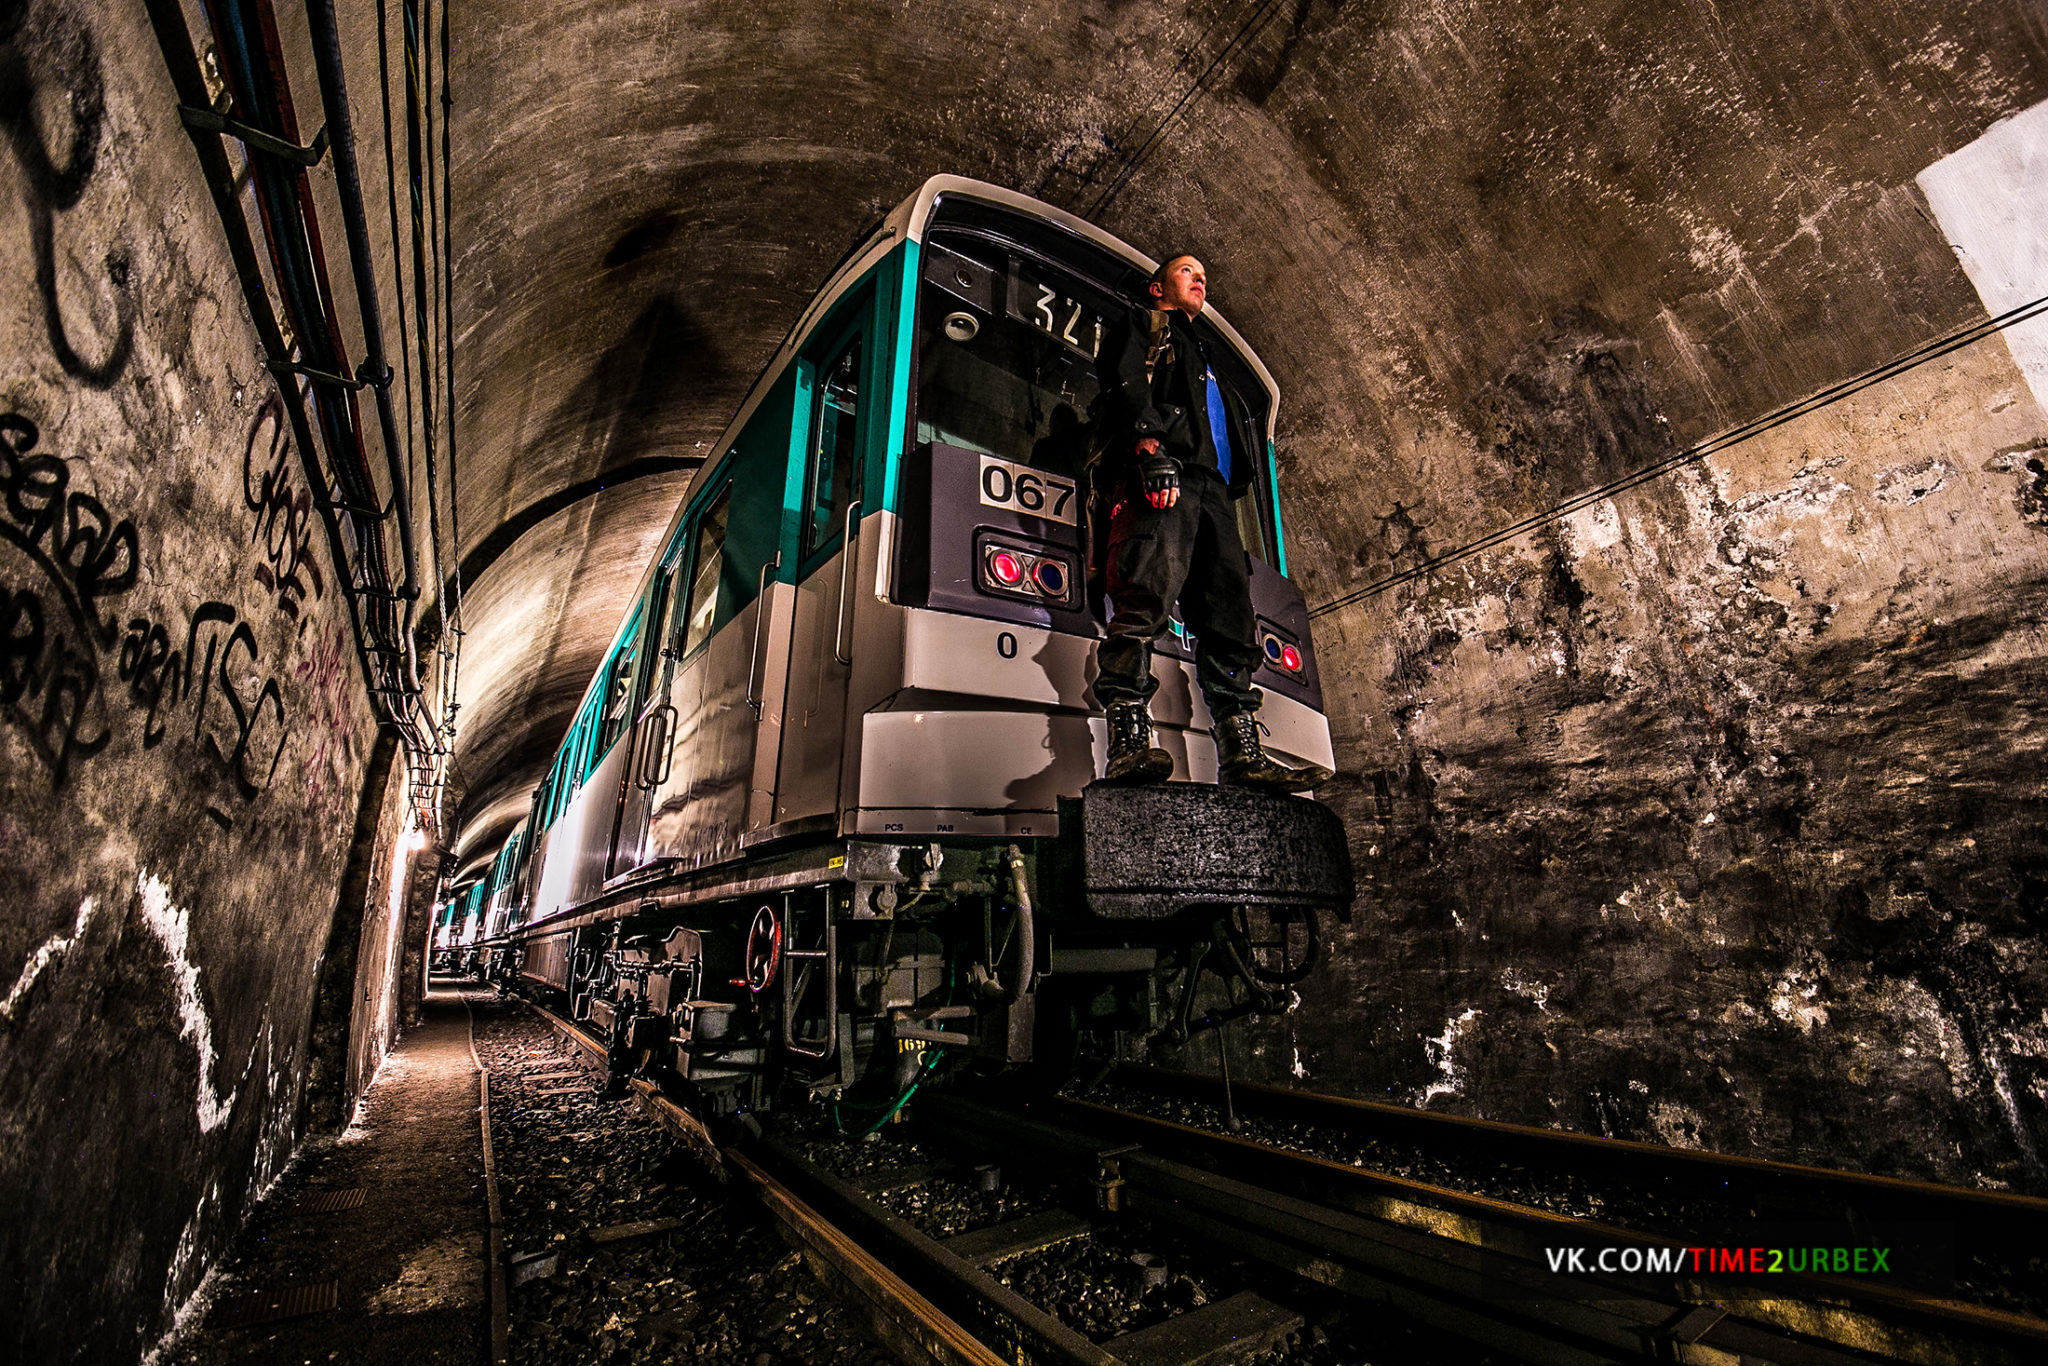 1-1 7 GHOST STATIONS OF THE PARIS METRO AND HOW TO GET INTO THE ILLEGALLY + UNUSUAL TUNNELS + RER